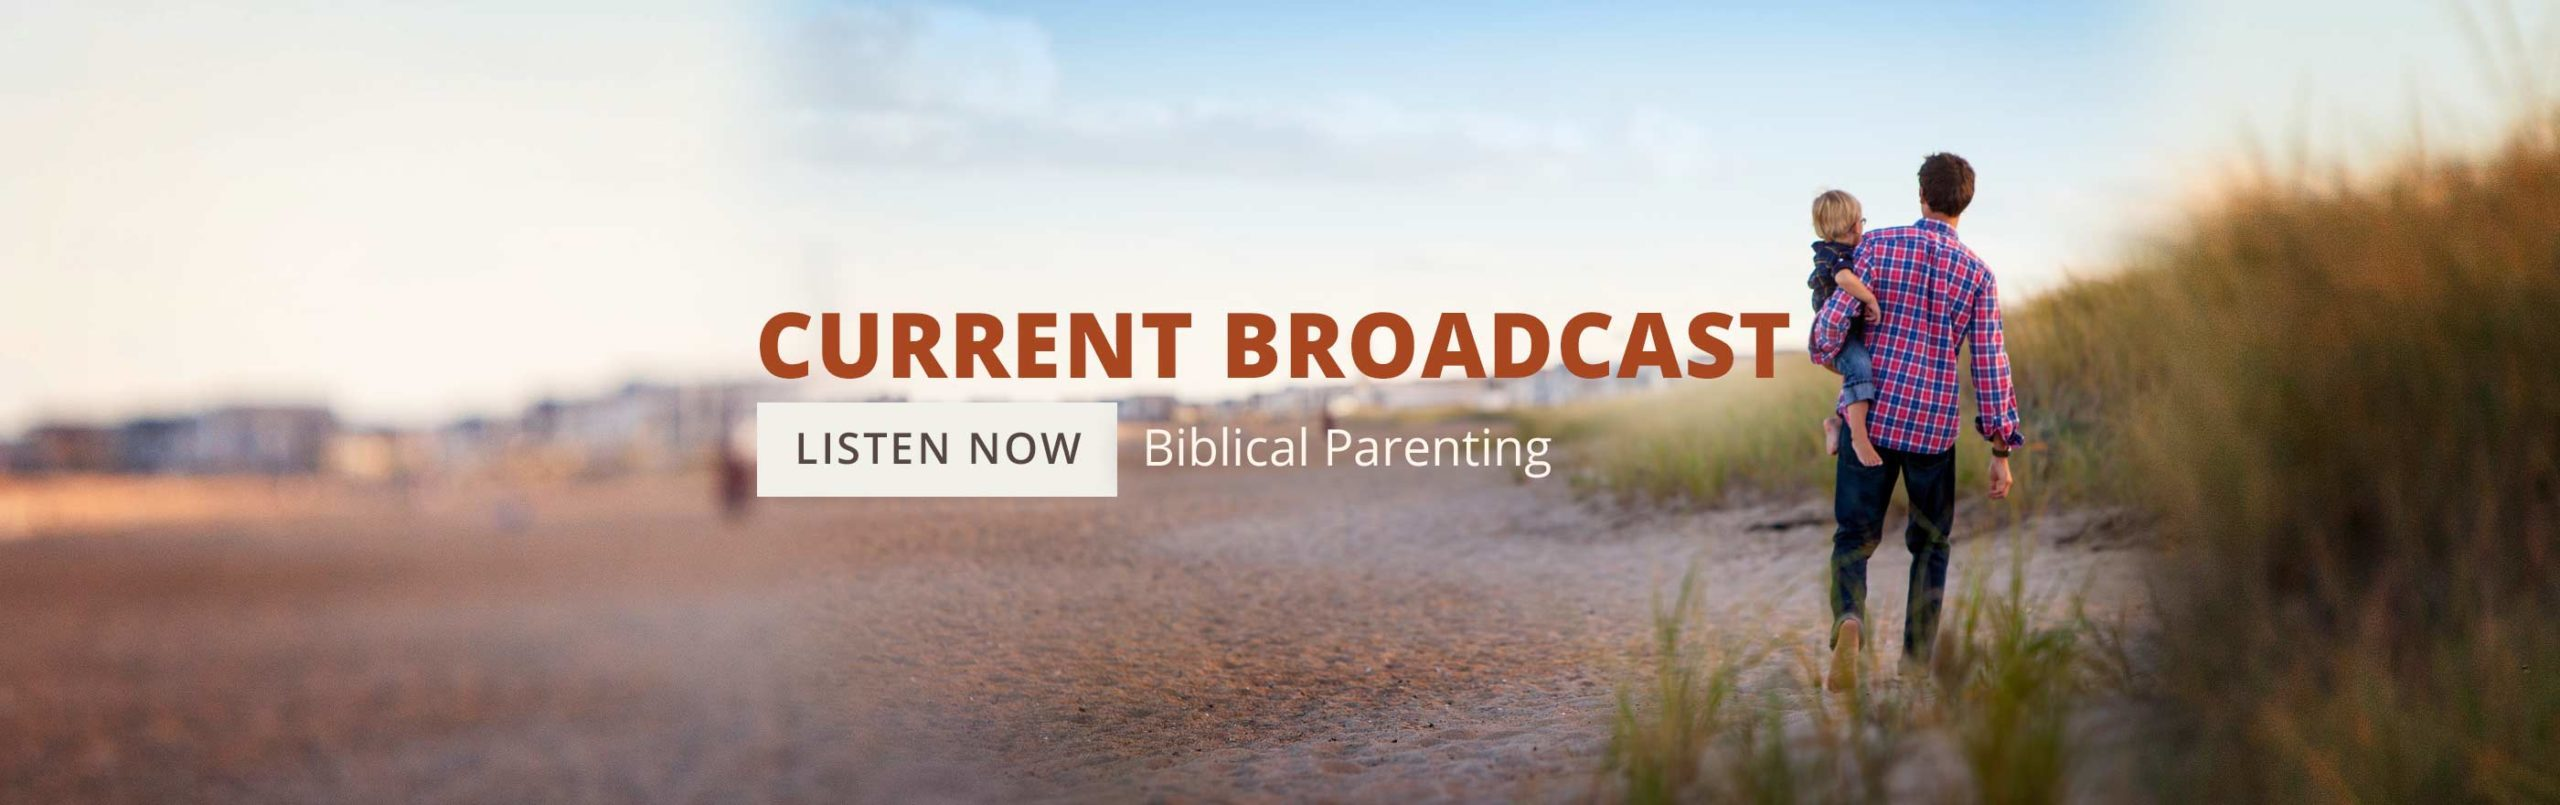 image of father holding child on beach for Biblical Parenting series